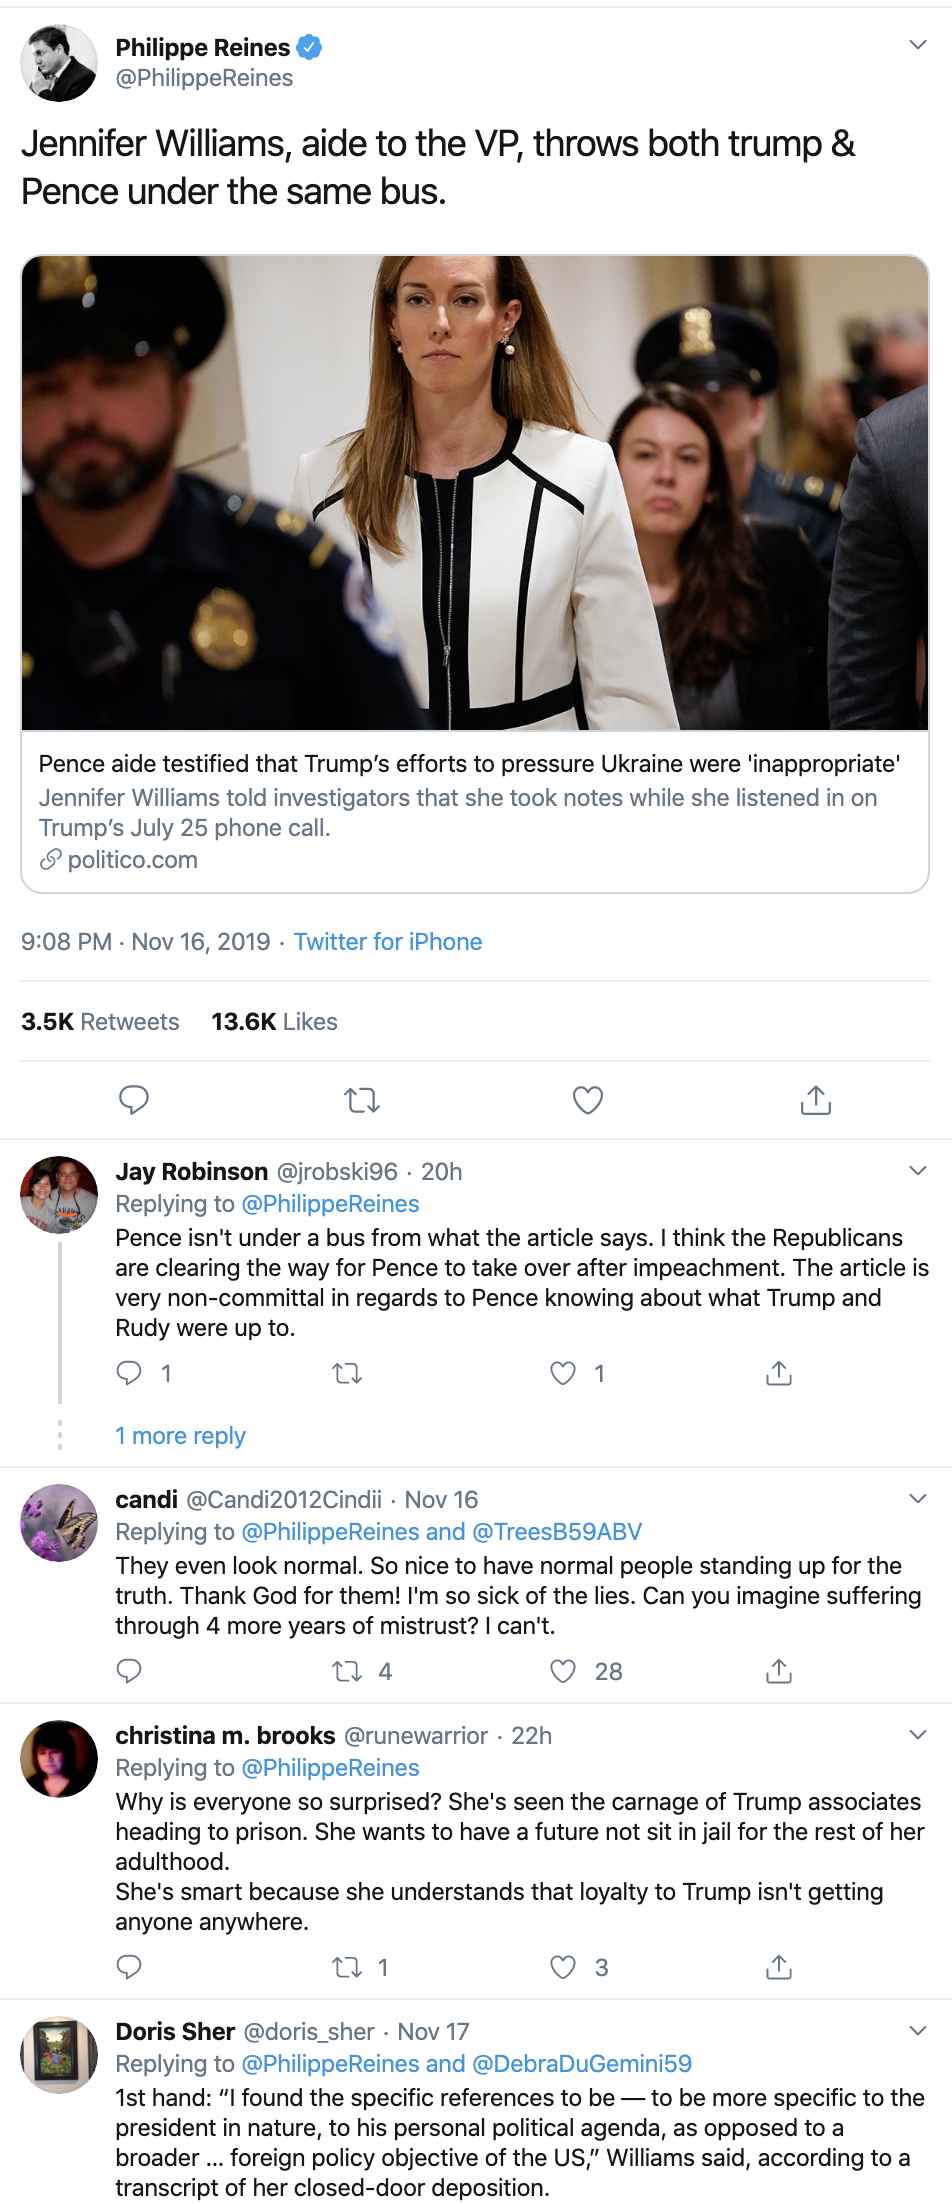 Screen-Shot-2019-11-18-at-10.26.07-AM Pence Throws His Top Security Aide Under The Bus For Testifying Corruption Crime Donald Trump Election 2016 Election 2020 Featured Feminism Foreign Policy Impeachment Investigation Me Too National Security Politics Satire Top Stories Women's Rights